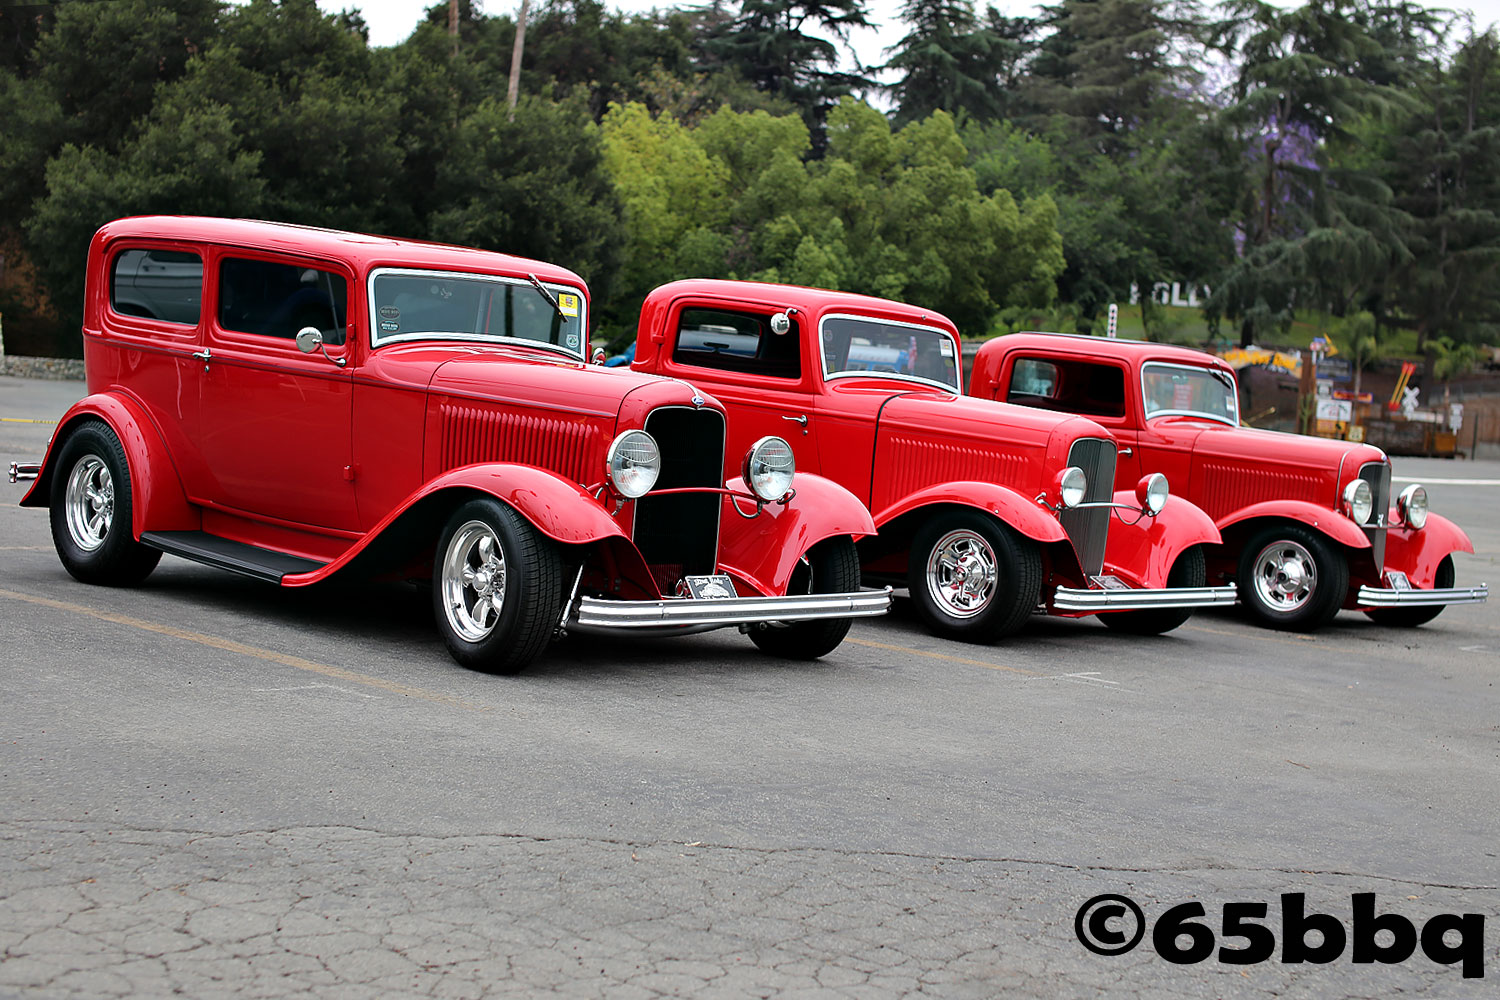 3 red rides from the LA Roadster car and swap meet 65bbq